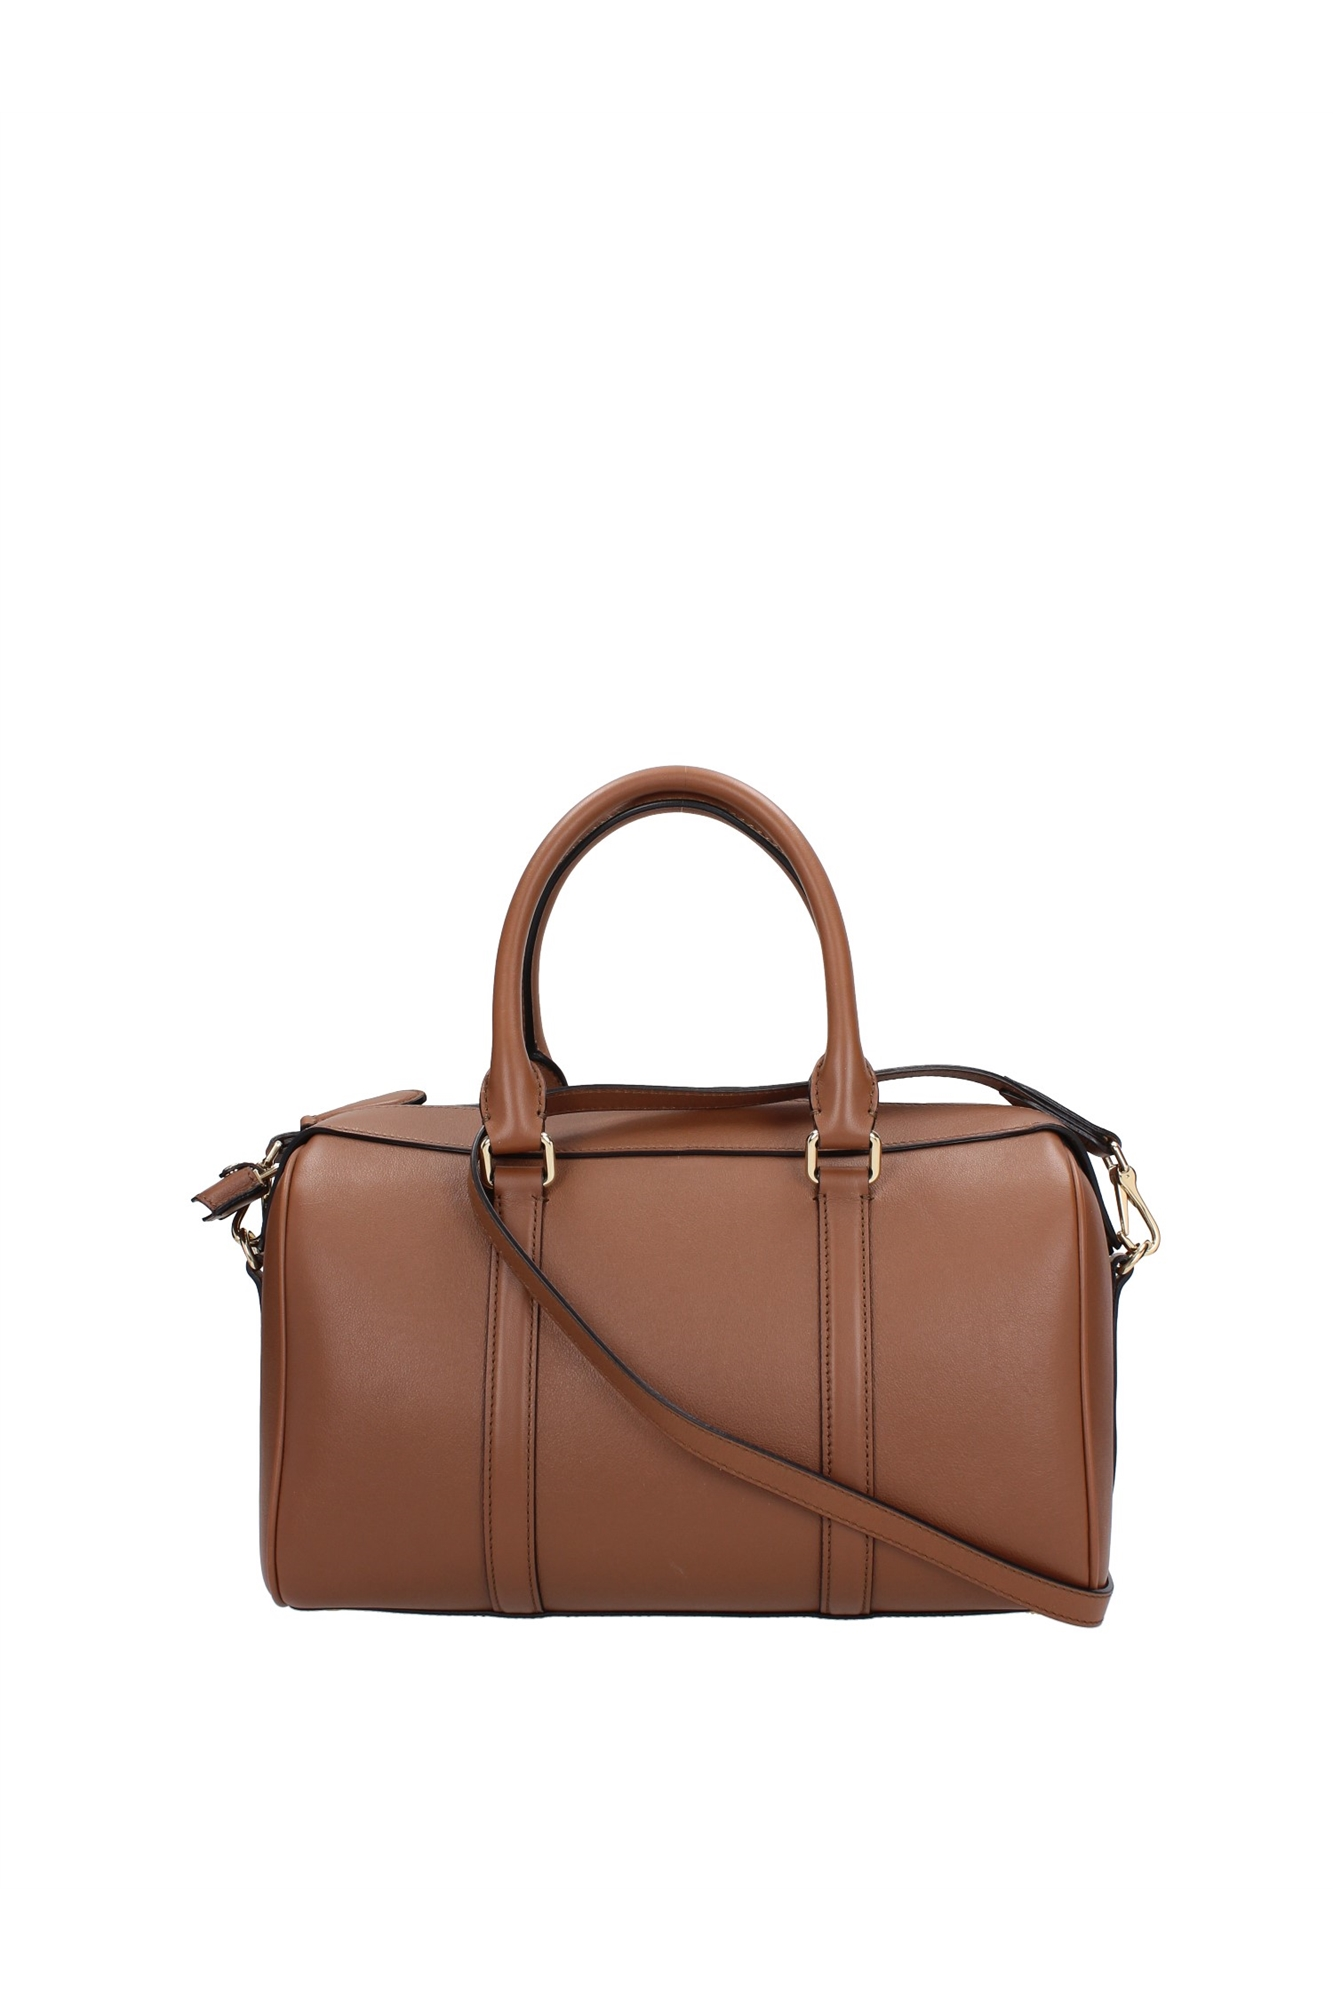 Bowling Bags Burberry Women Leather Brown 3939635 | eBay